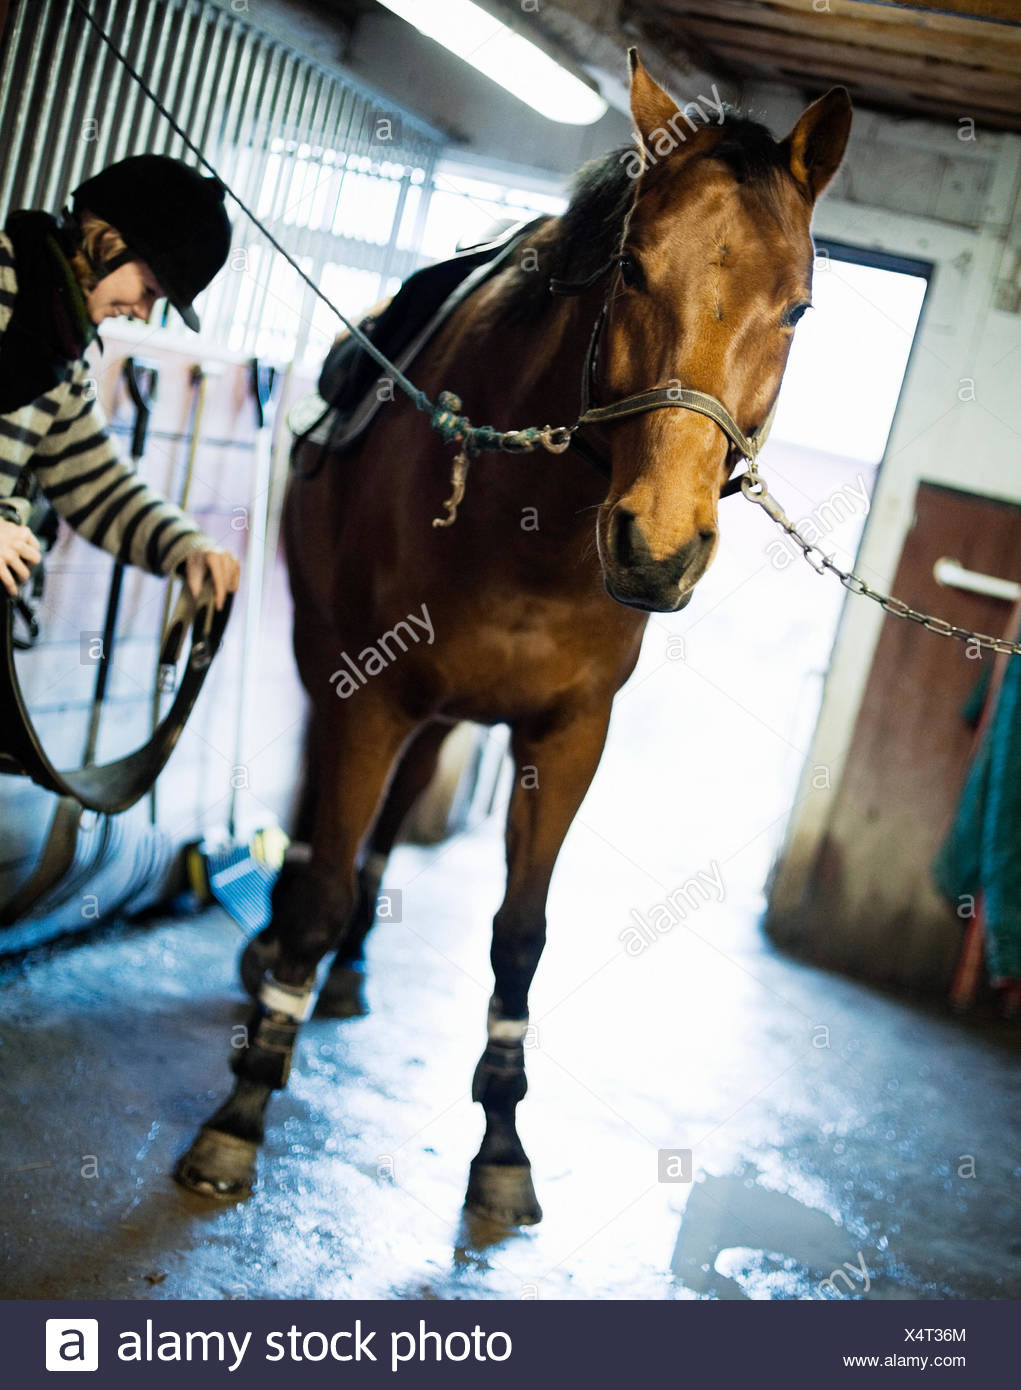 Woman with a horse in the stable, Sweden. - Stock Image